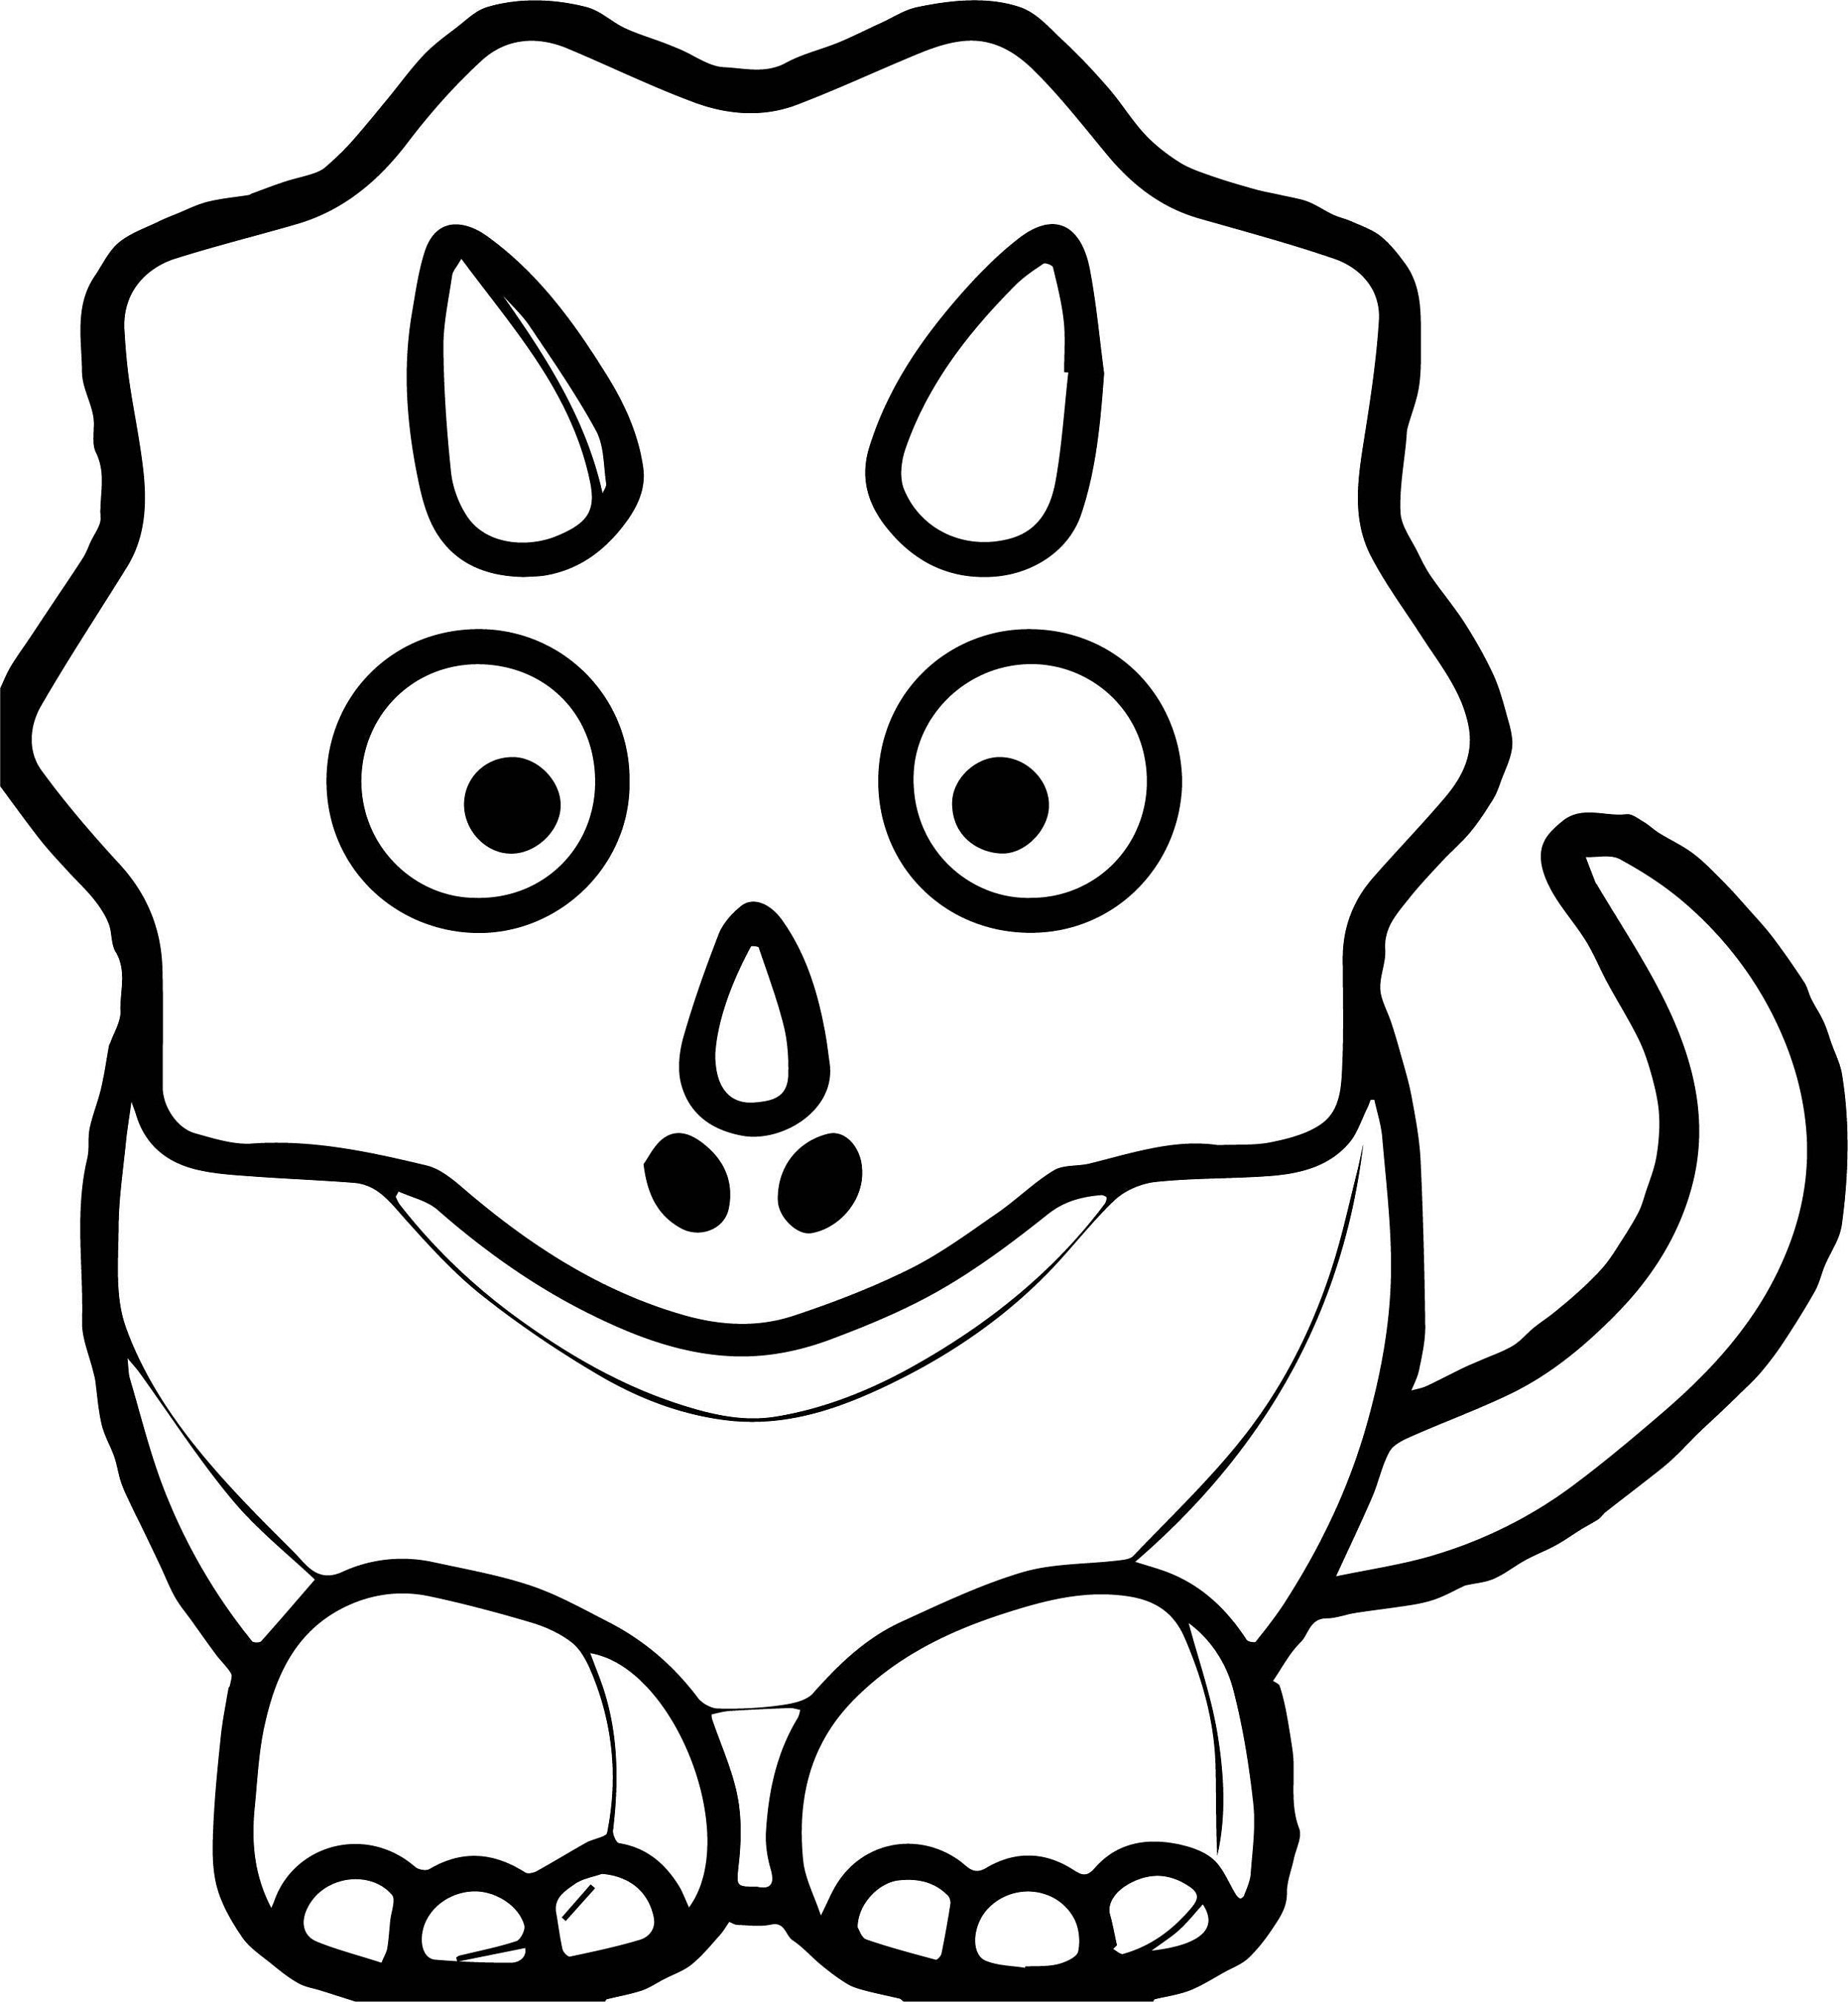 dinosaur pictures to colour in dinosaur coloring pages 2018 dr odd to colour pictures dinosaur in